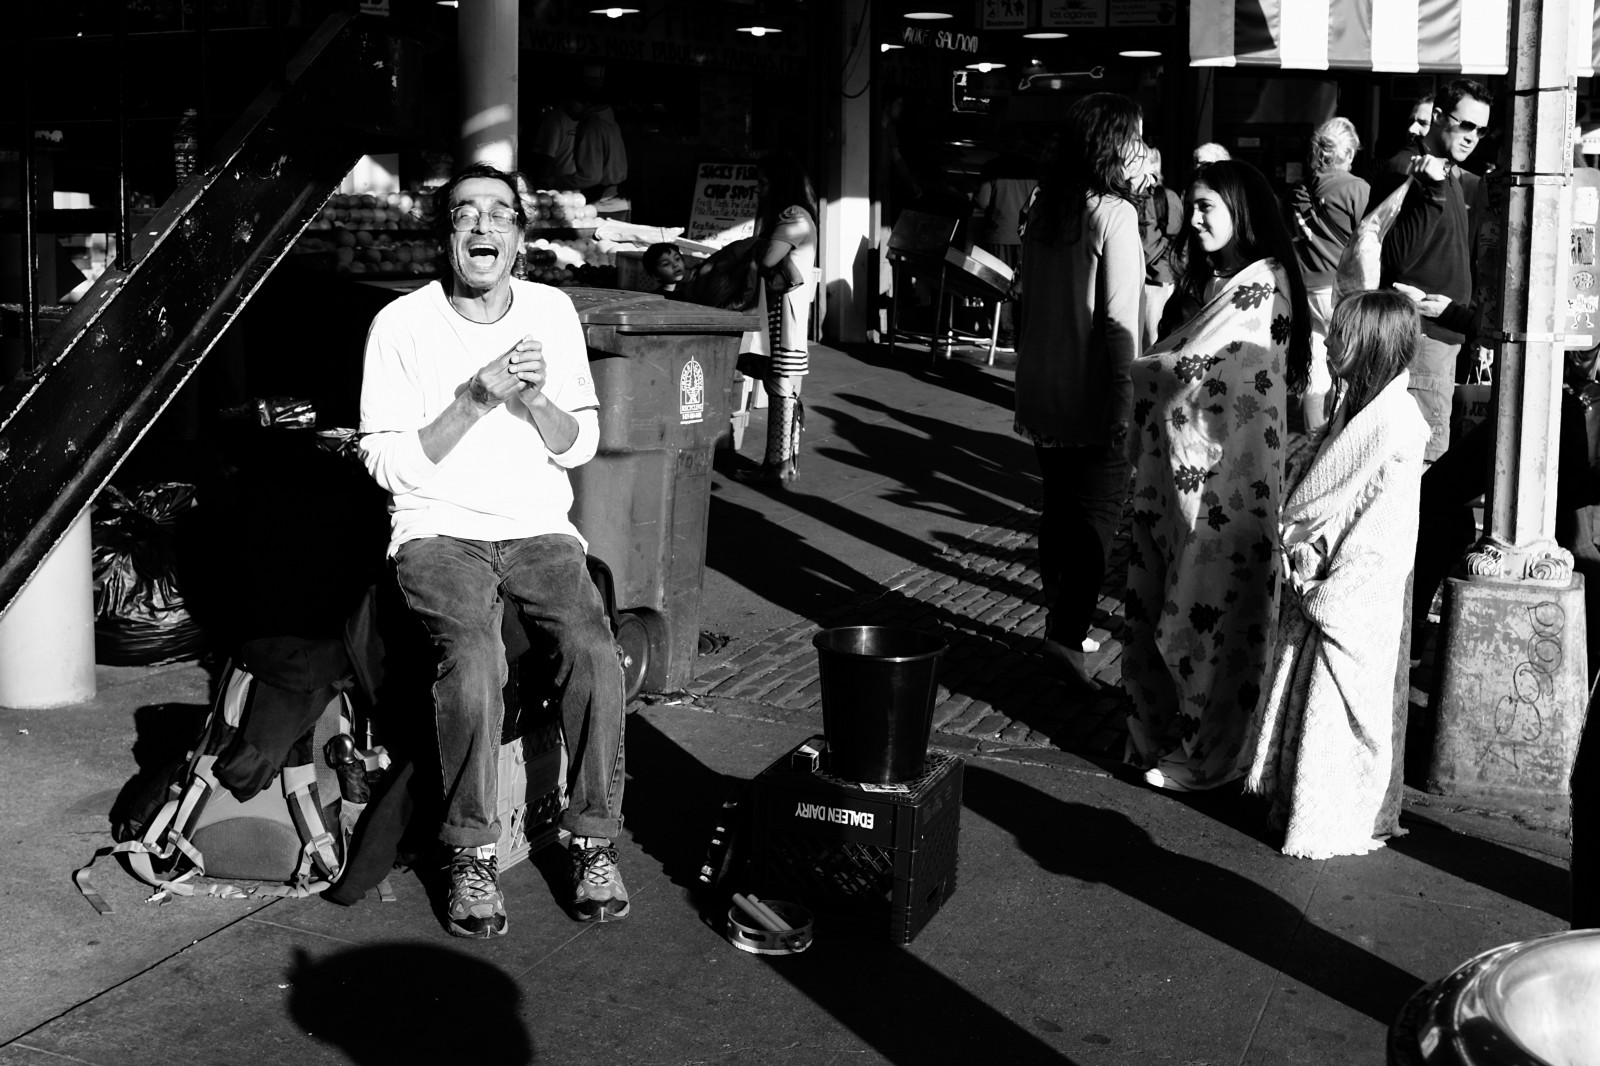 Why The Fujifilm X100t Is My Favorite Camera Danny Ngan Apple Iphone 6 Mplw Hybrid Film A Busker Performs For Kids At Pike Place Market In Seattle Wa Straight Out Of Using Bw Red Filter Simulation